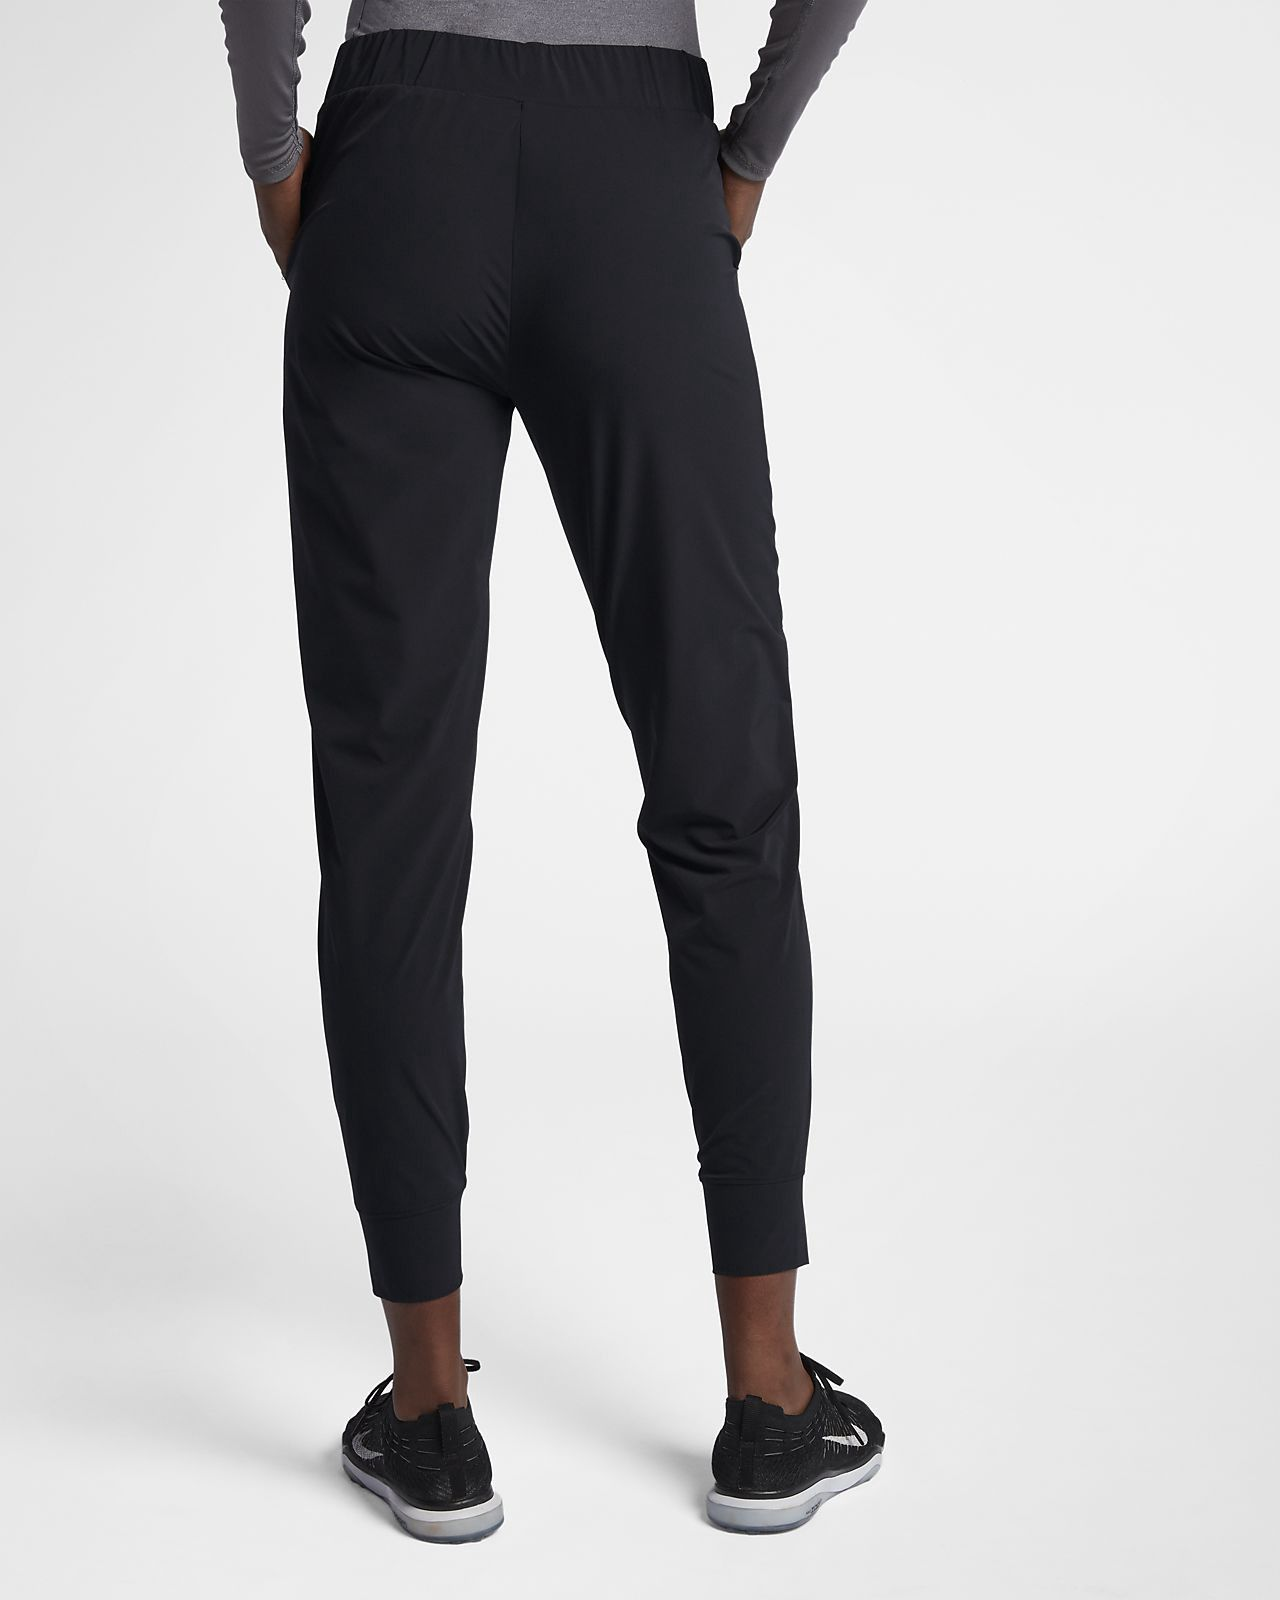 96fdbaf2 Nike Bliss Lux Women's Training Pants - Xs (0–2) in 2019 | Products ...